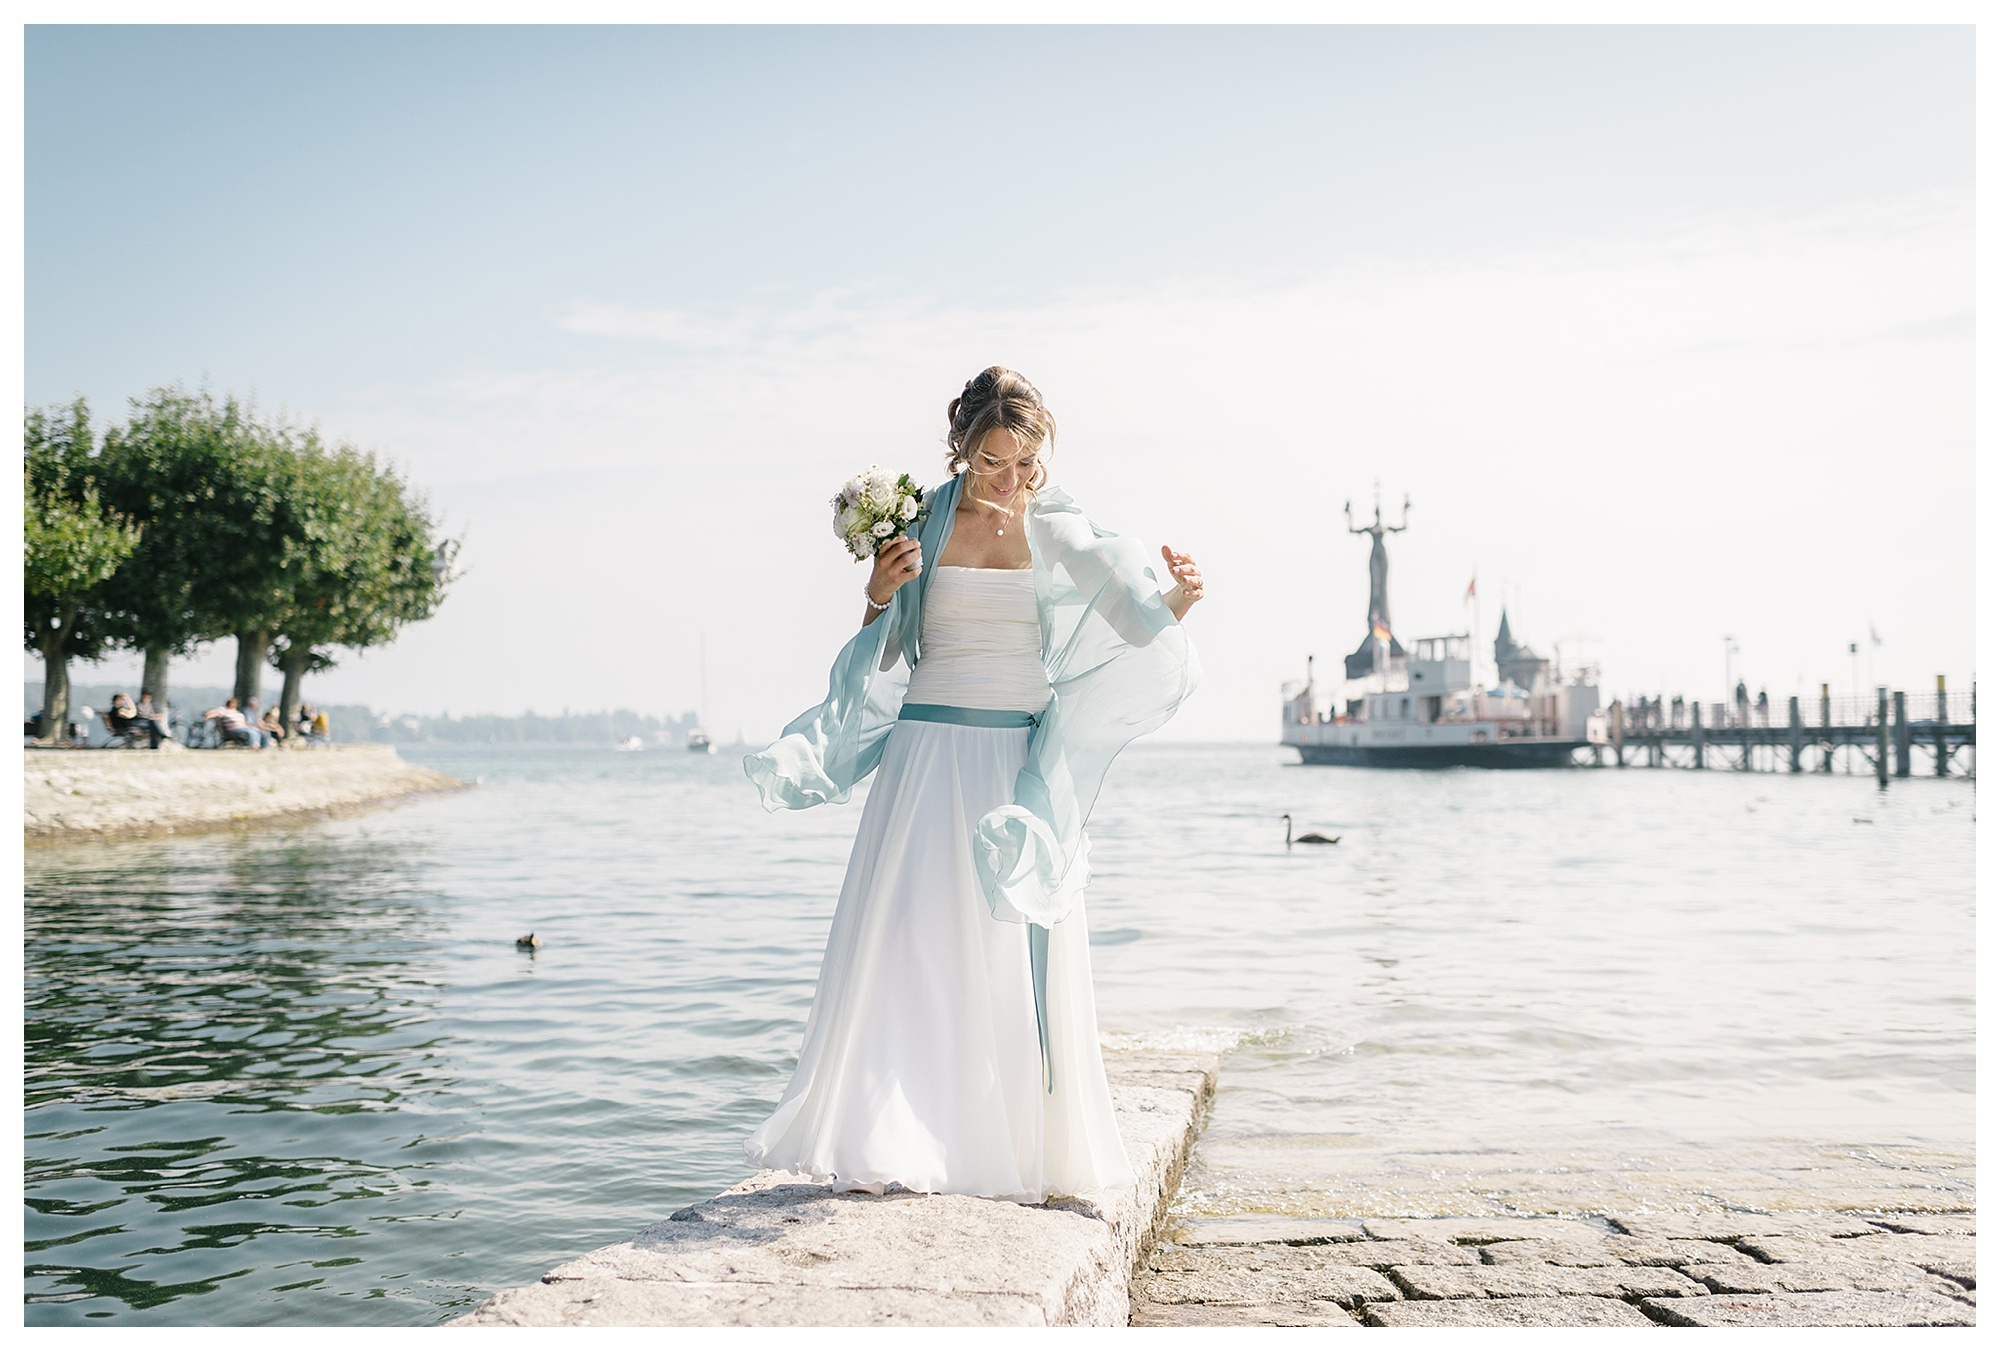 Fotograf Konstanz - Hochzeitsreportage Konstanz Raphael Nicole Elmar Feuerbacher Photography Hochzeit Portrait 23 - Wedding in Constance at Lake of Constance  - 58 -